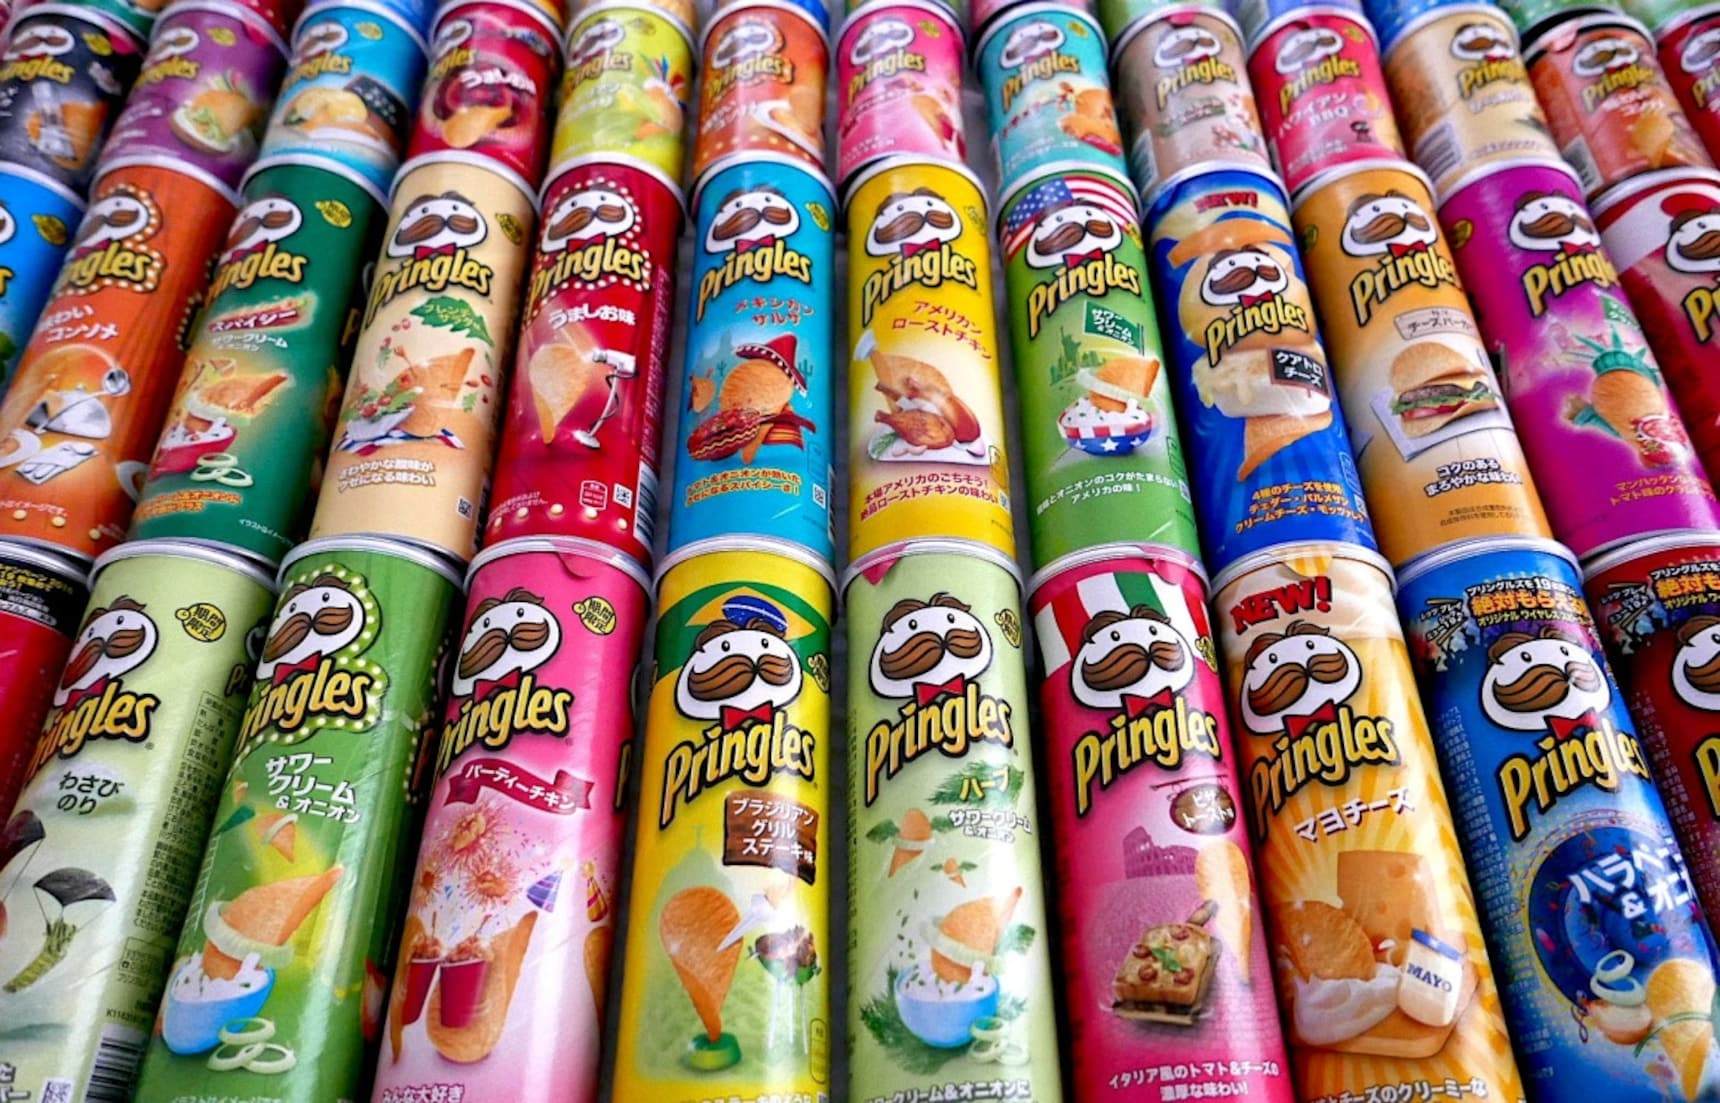 6 Off-the-Wall Pringles Flavors!